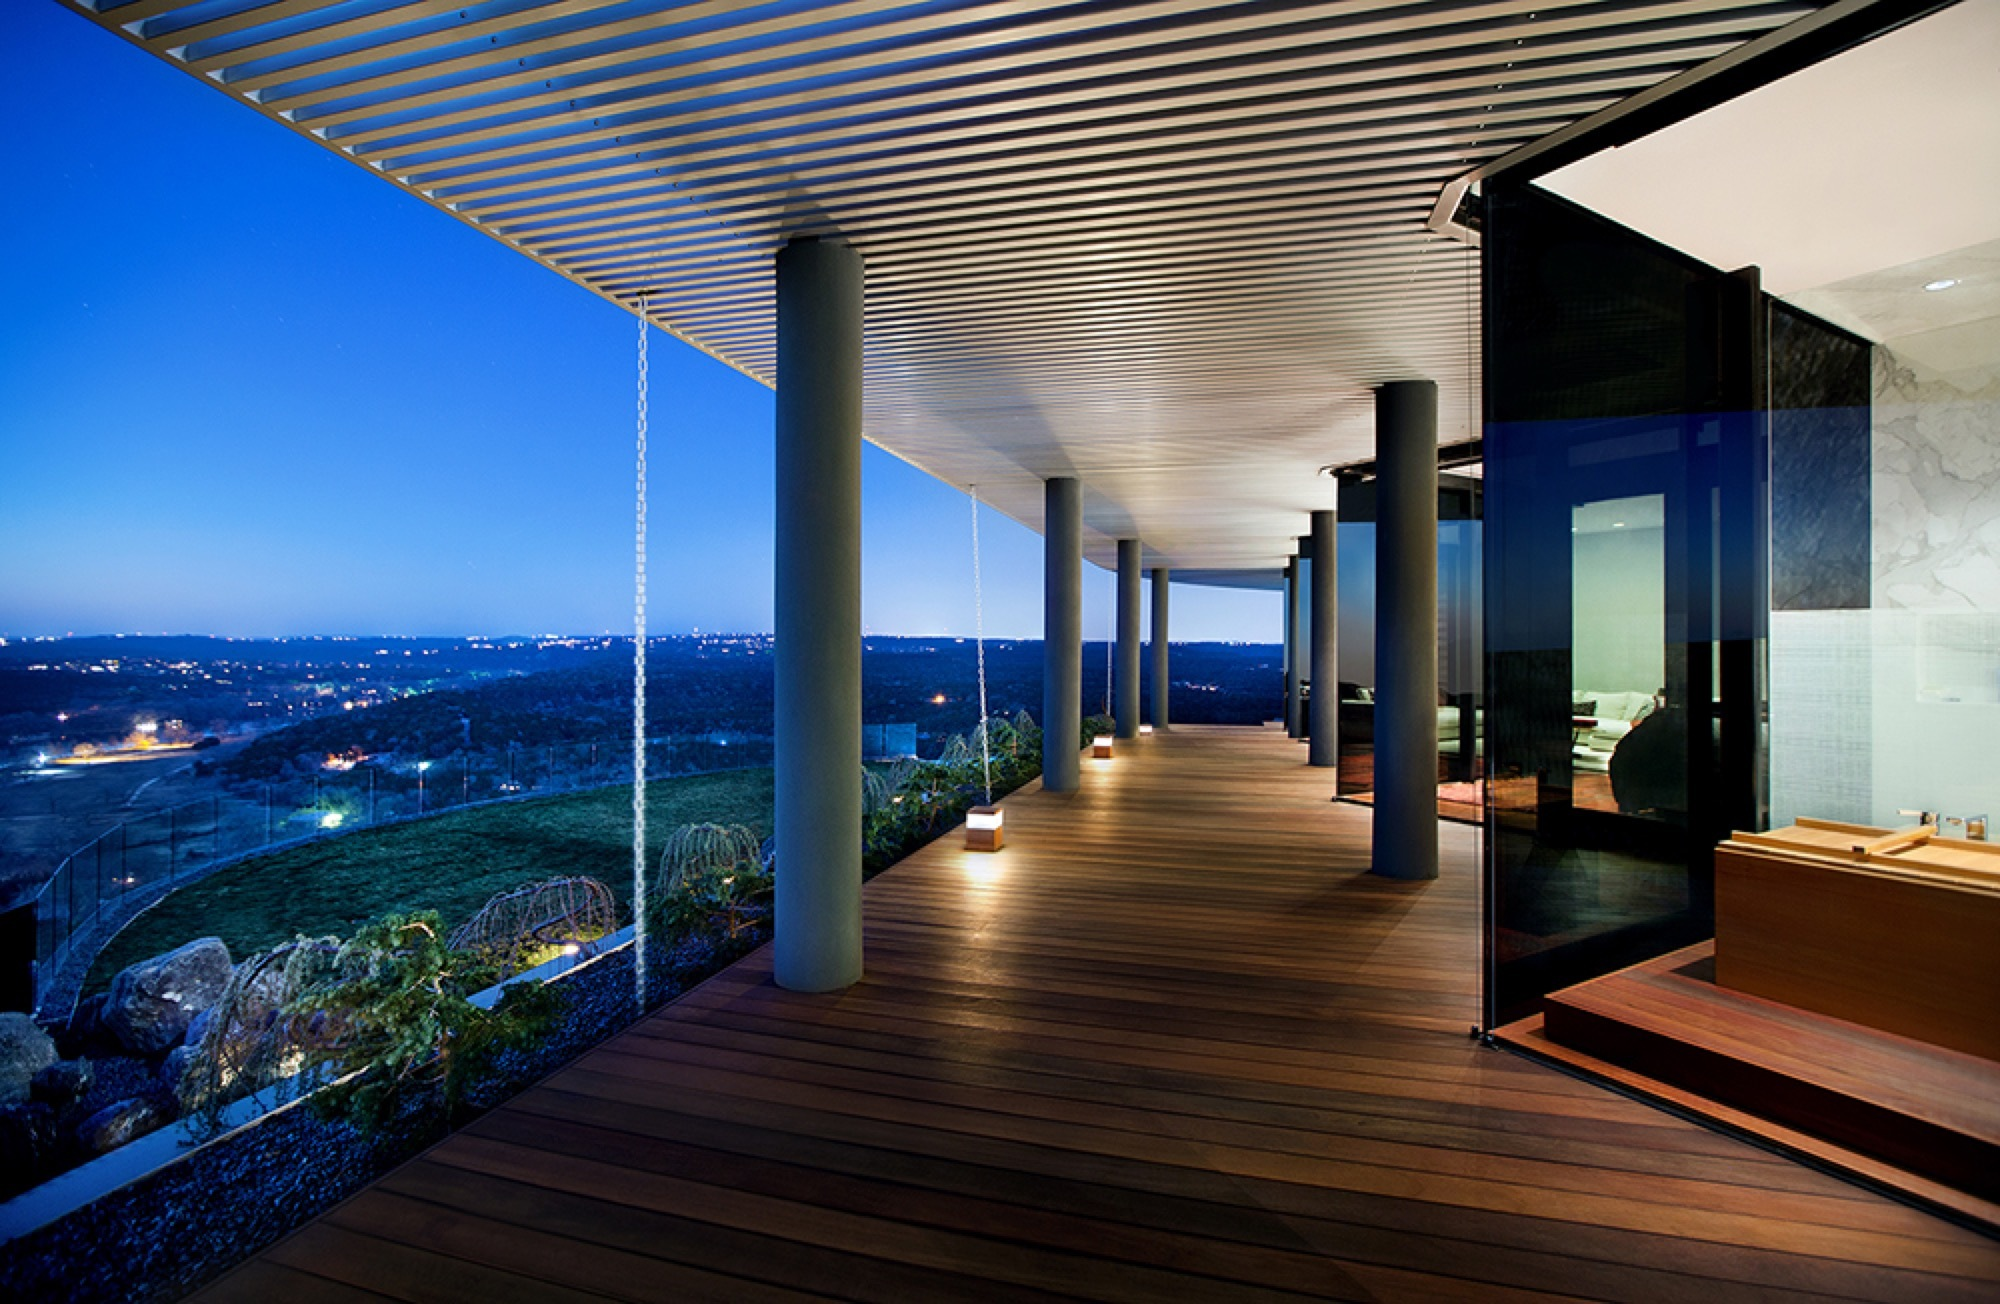 Hilltop Residence  Mir Rivera Architects  ArchDaily